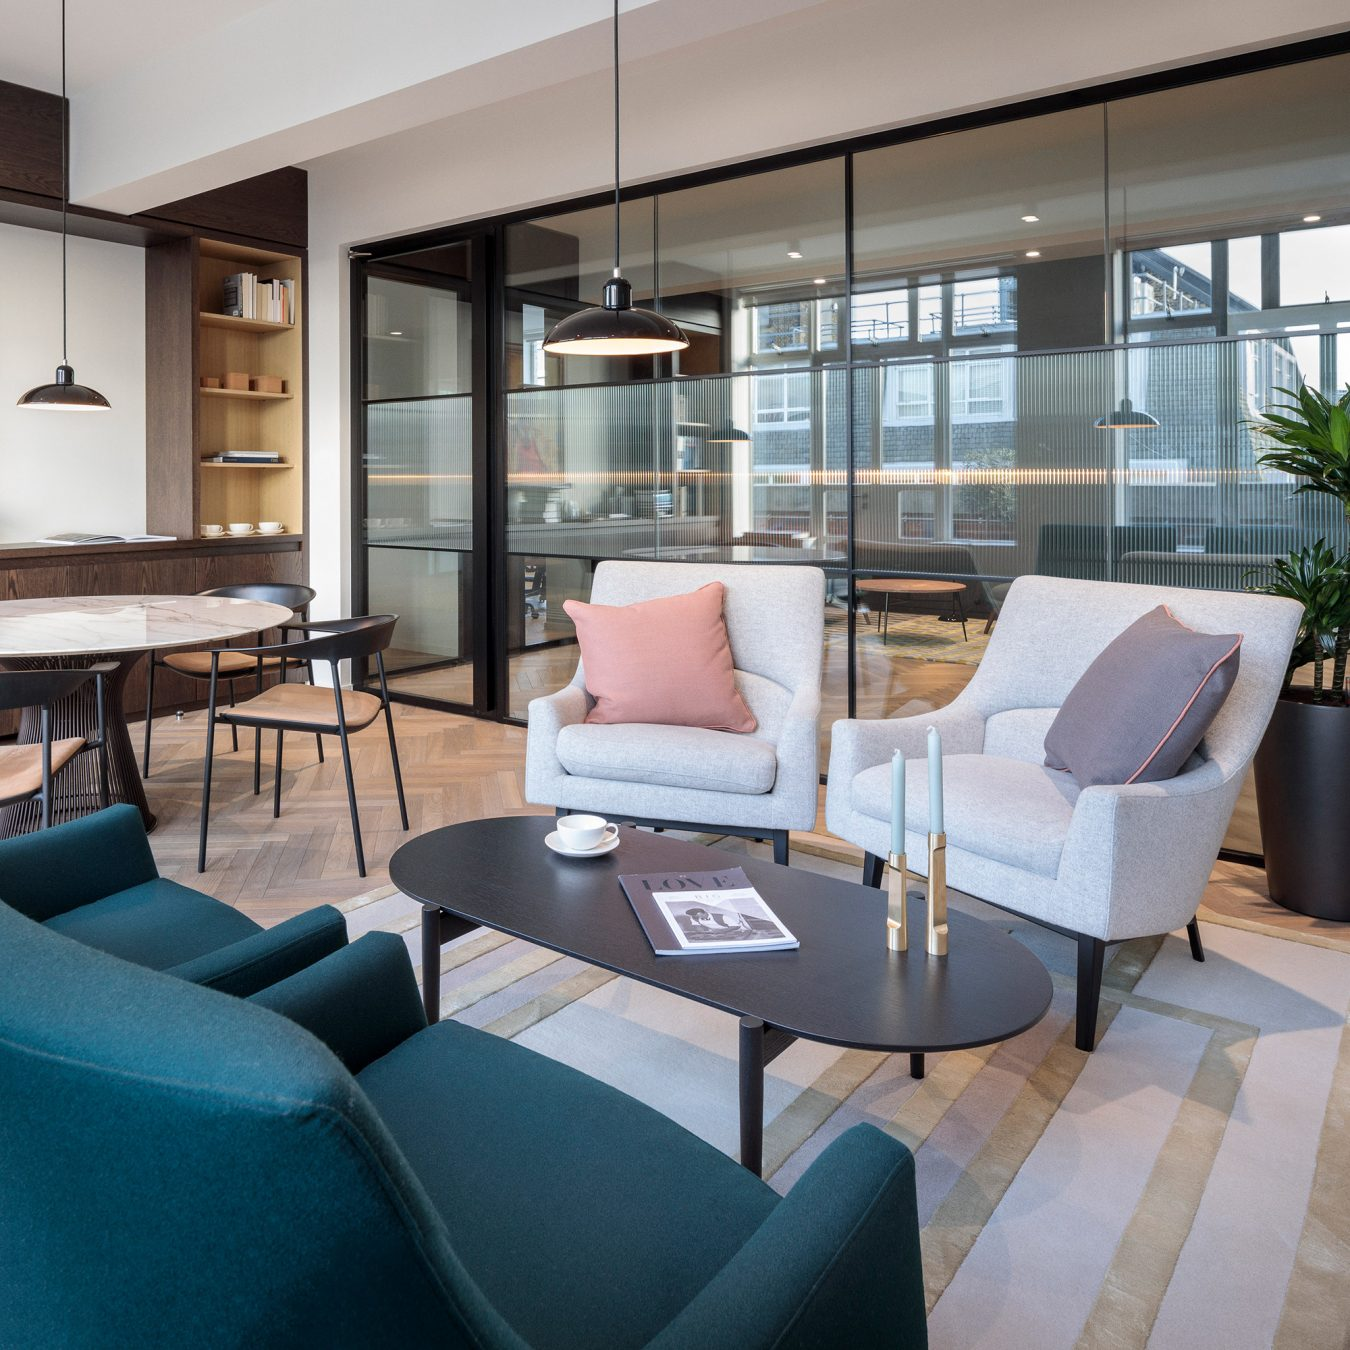 A design and build office fit-out in Esley House created a space dedicated to well-being and collaboration.